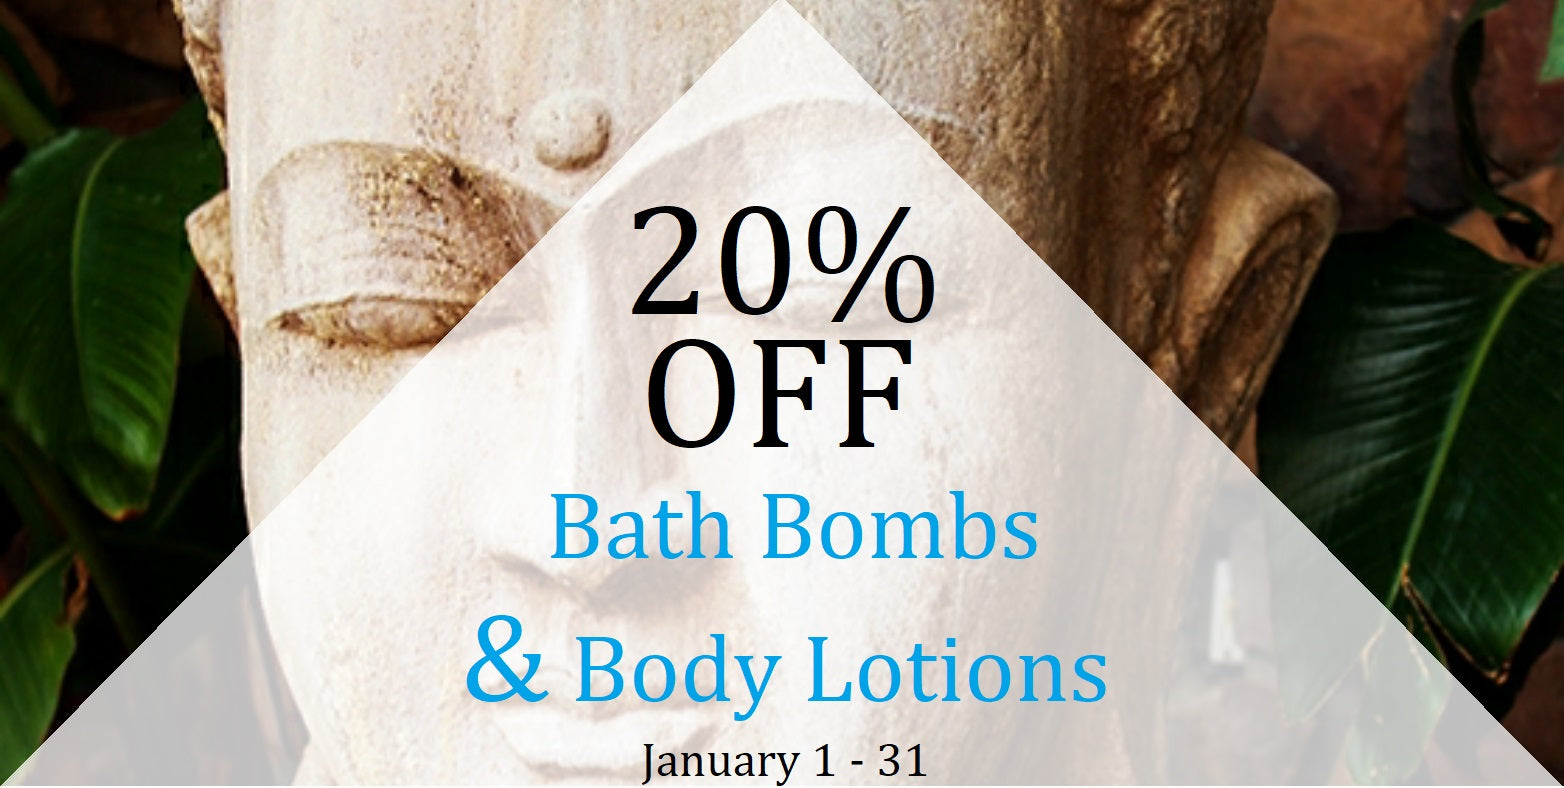 20% OFF Bath Bombs and Body Lotions Jan 1-31